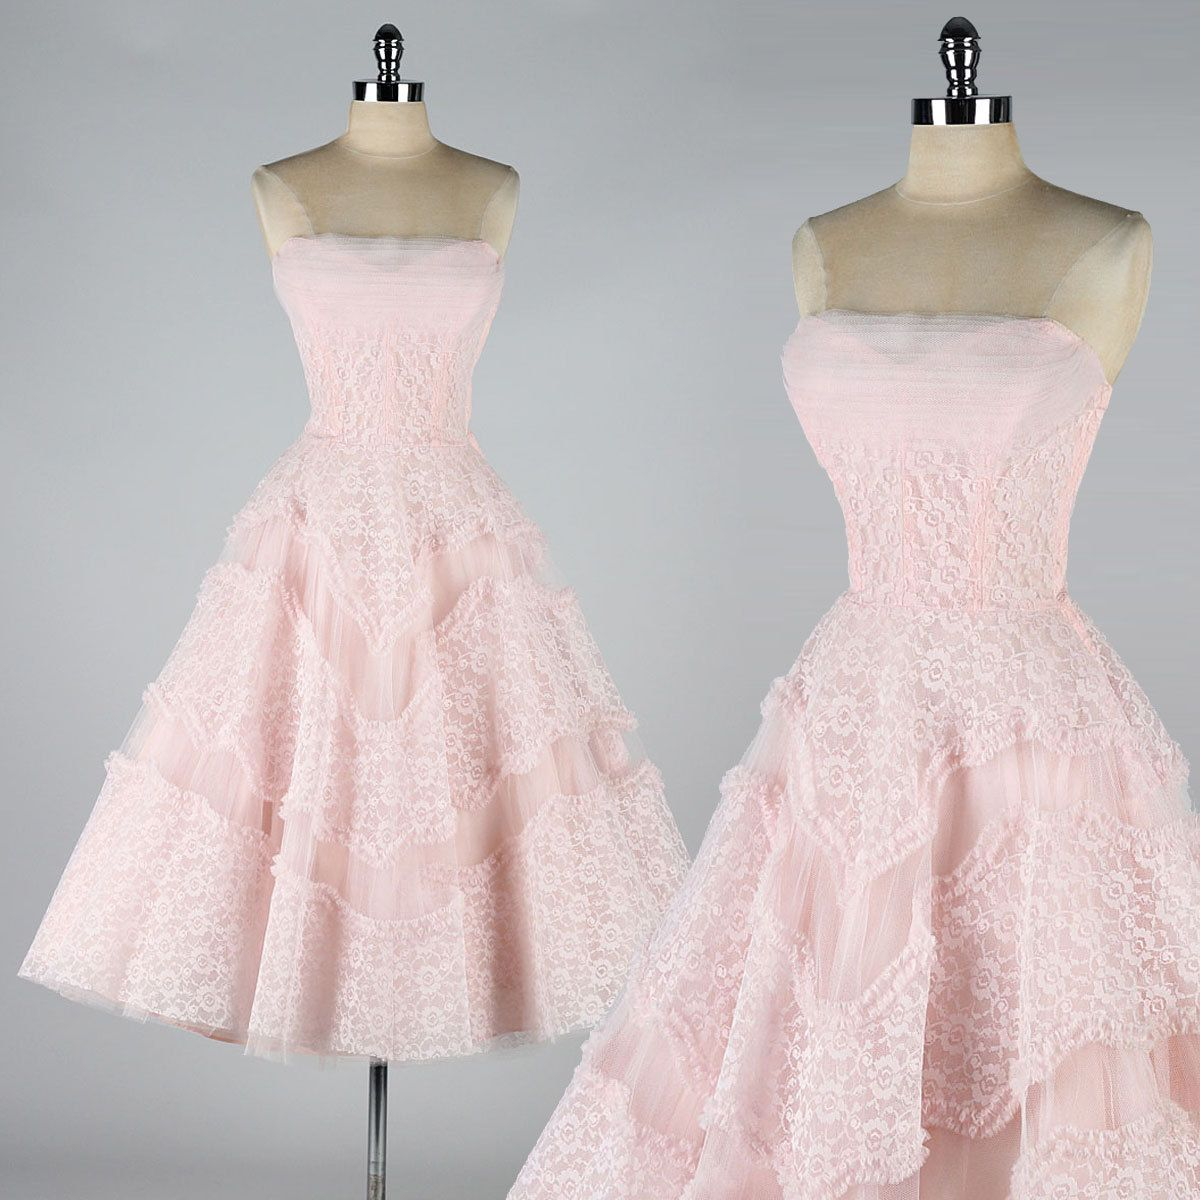 1950s lace dress  vintage s dress  EMMA DOMB  pink lace and tulle